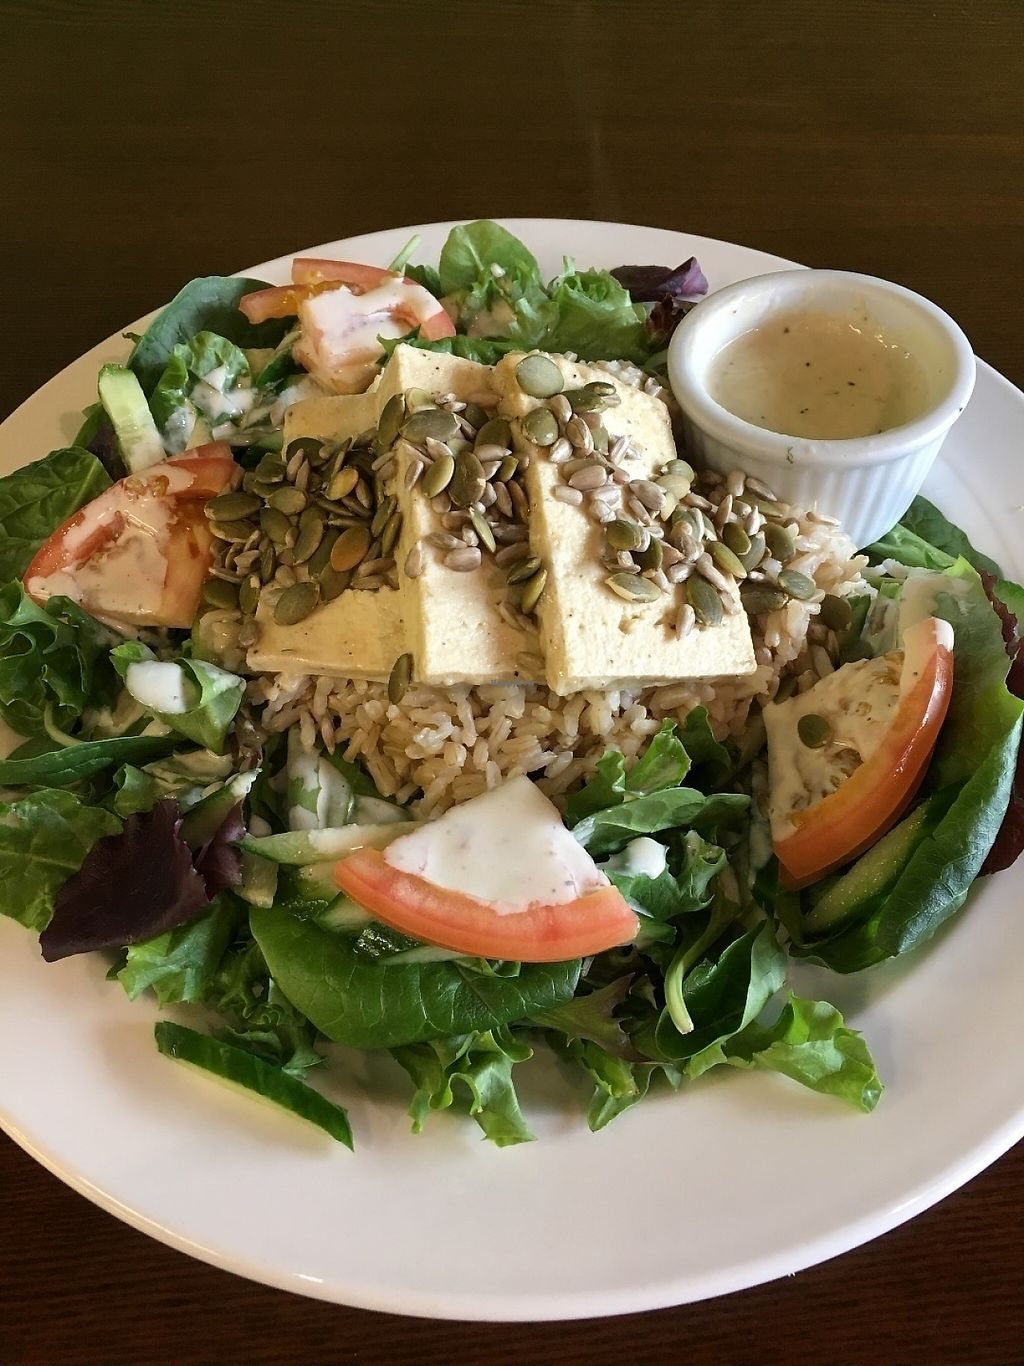 """Photo of Sejuiced  by <a href=""""/members/profile/vegan%20frog"""">vegan frog</a> <br/>Bowl with Gf option sauce <br/> May 20, 2017  - <a href='/contact/abuse/image/4451/260720'>Report</a>"""